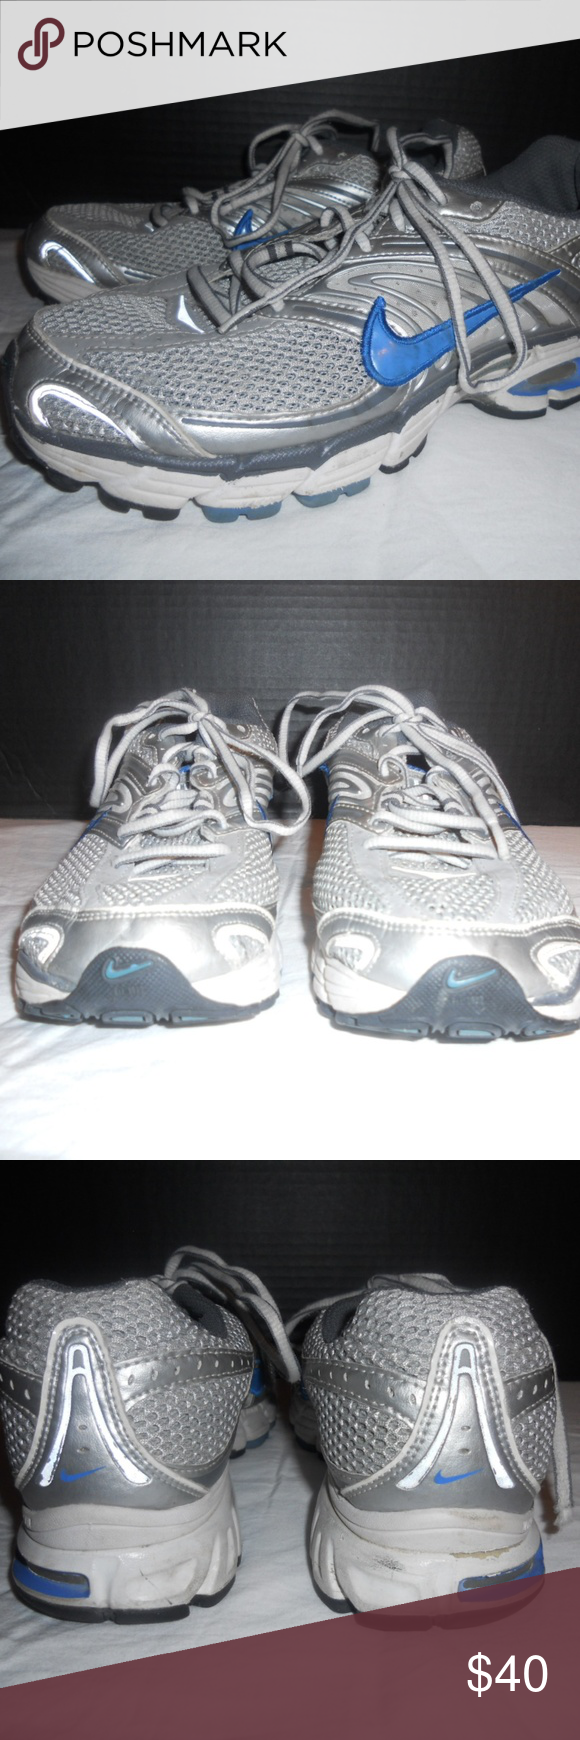 Municipios adolescentes frutas  Nike Air Max Moto 6 Women's Shoes Size 9 Nike Air Max Moto 6 Women's Shoes  Size 9 Grey and Blue. Nice looking shoes in… | Women shoes, Nike air max,  Wedding sneaker